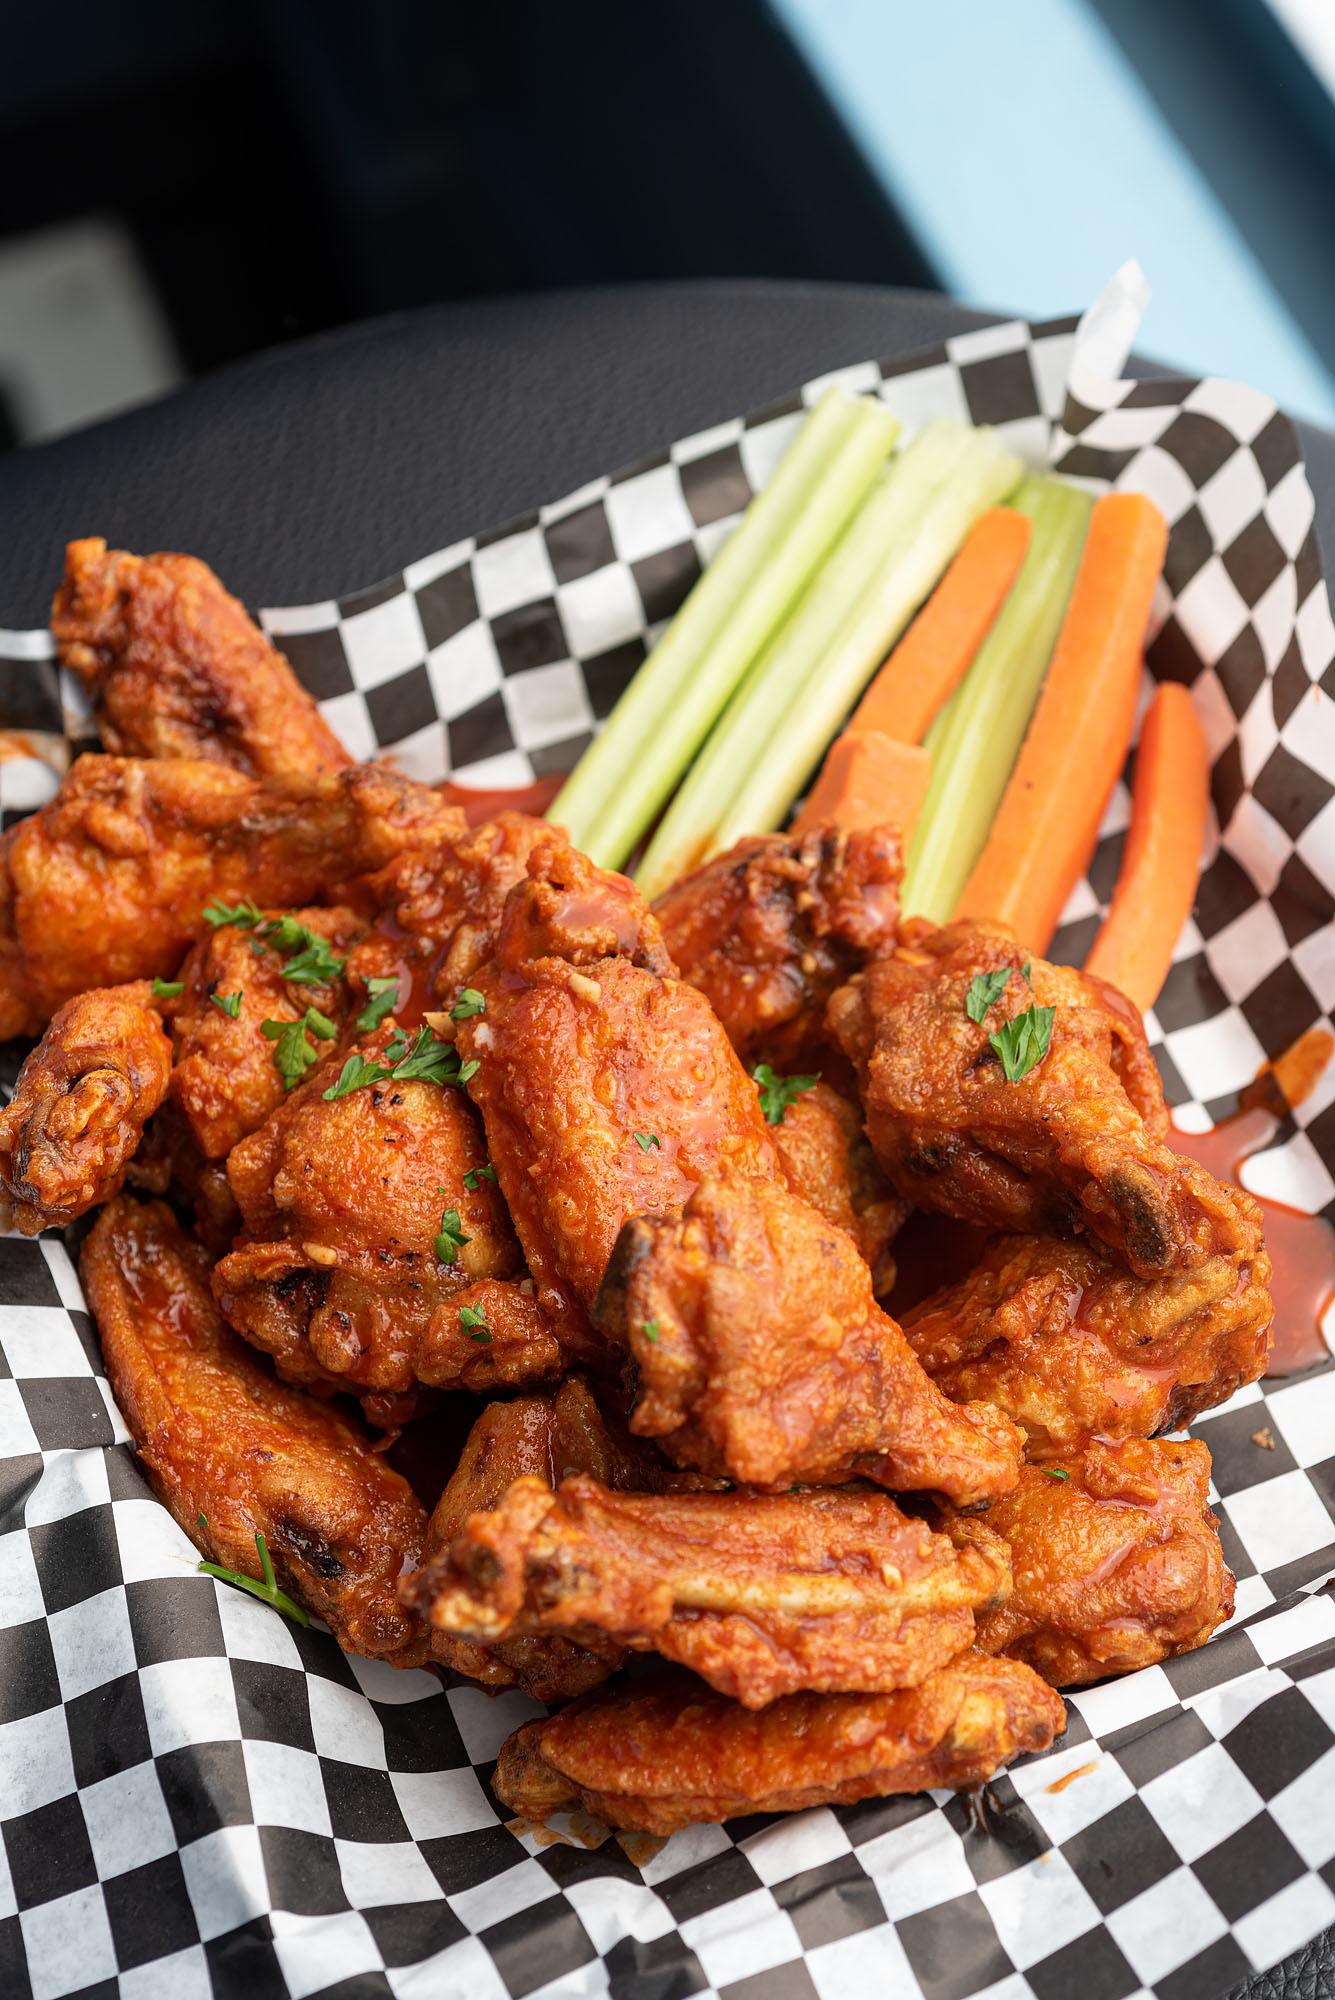 Buffalo chicken wings with carrot and celery sticks in a basket at The Greyhound.